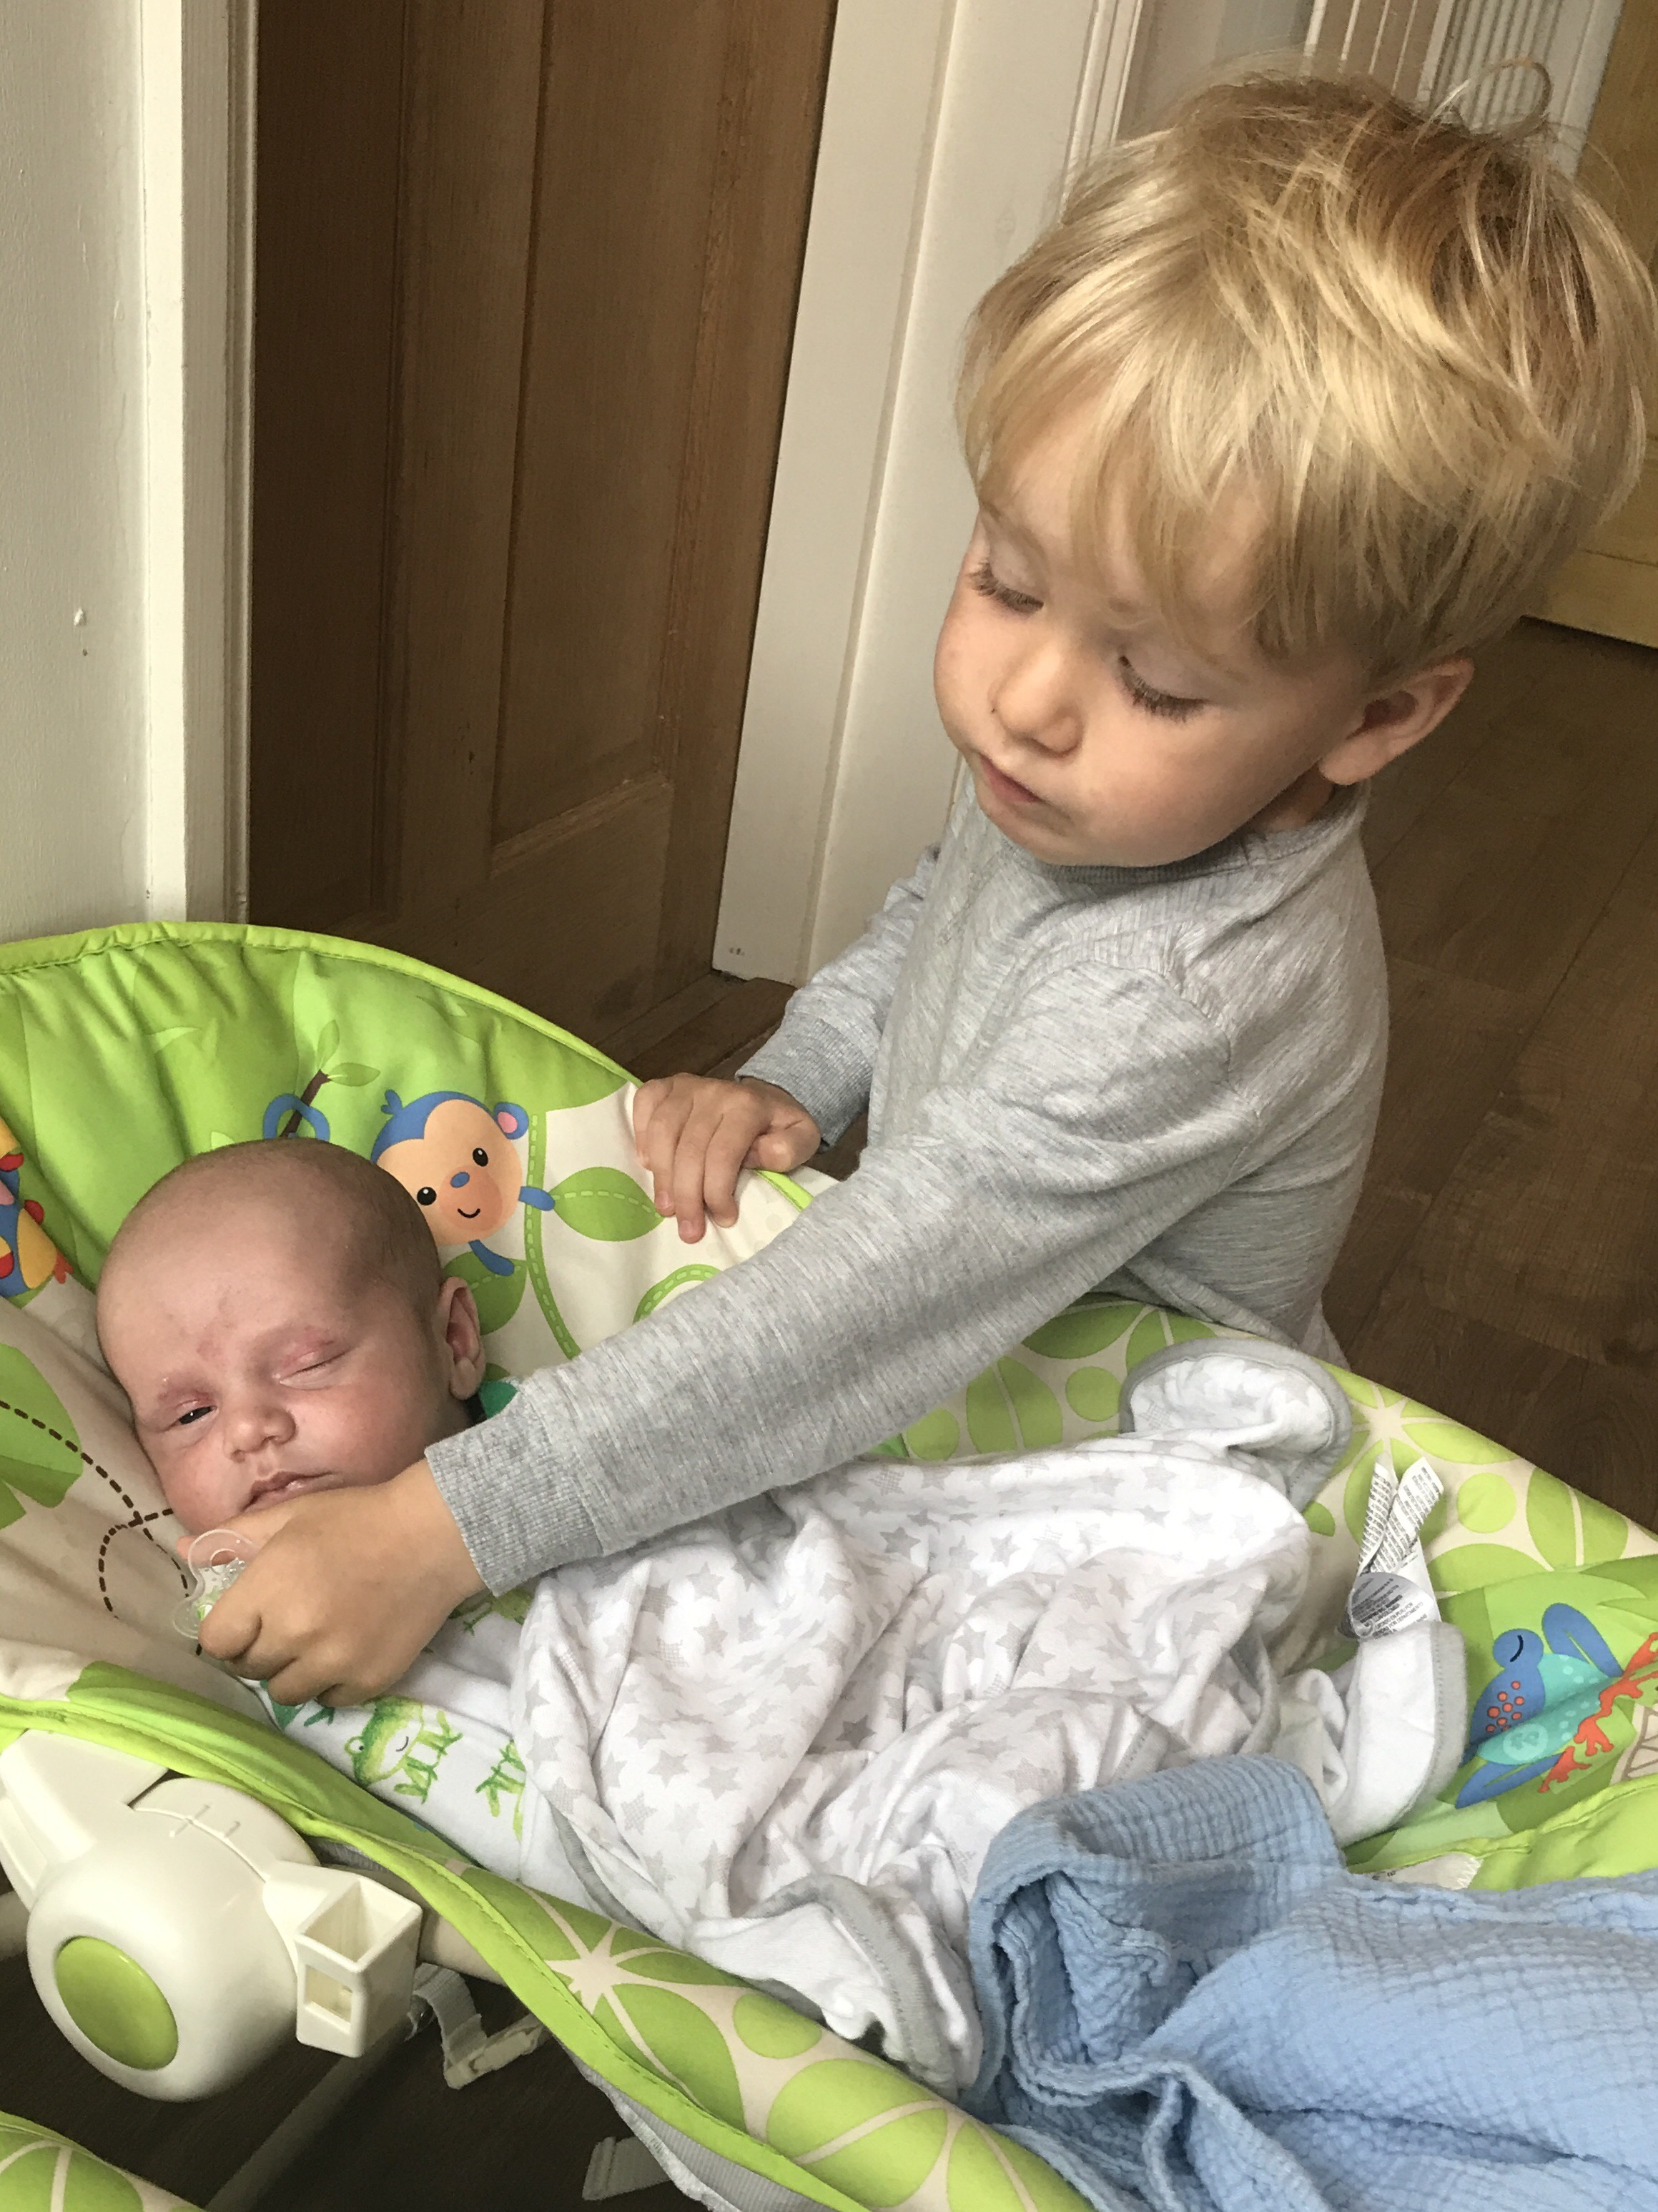 The *almost love/*almost hate relationship of a toddler and new twins